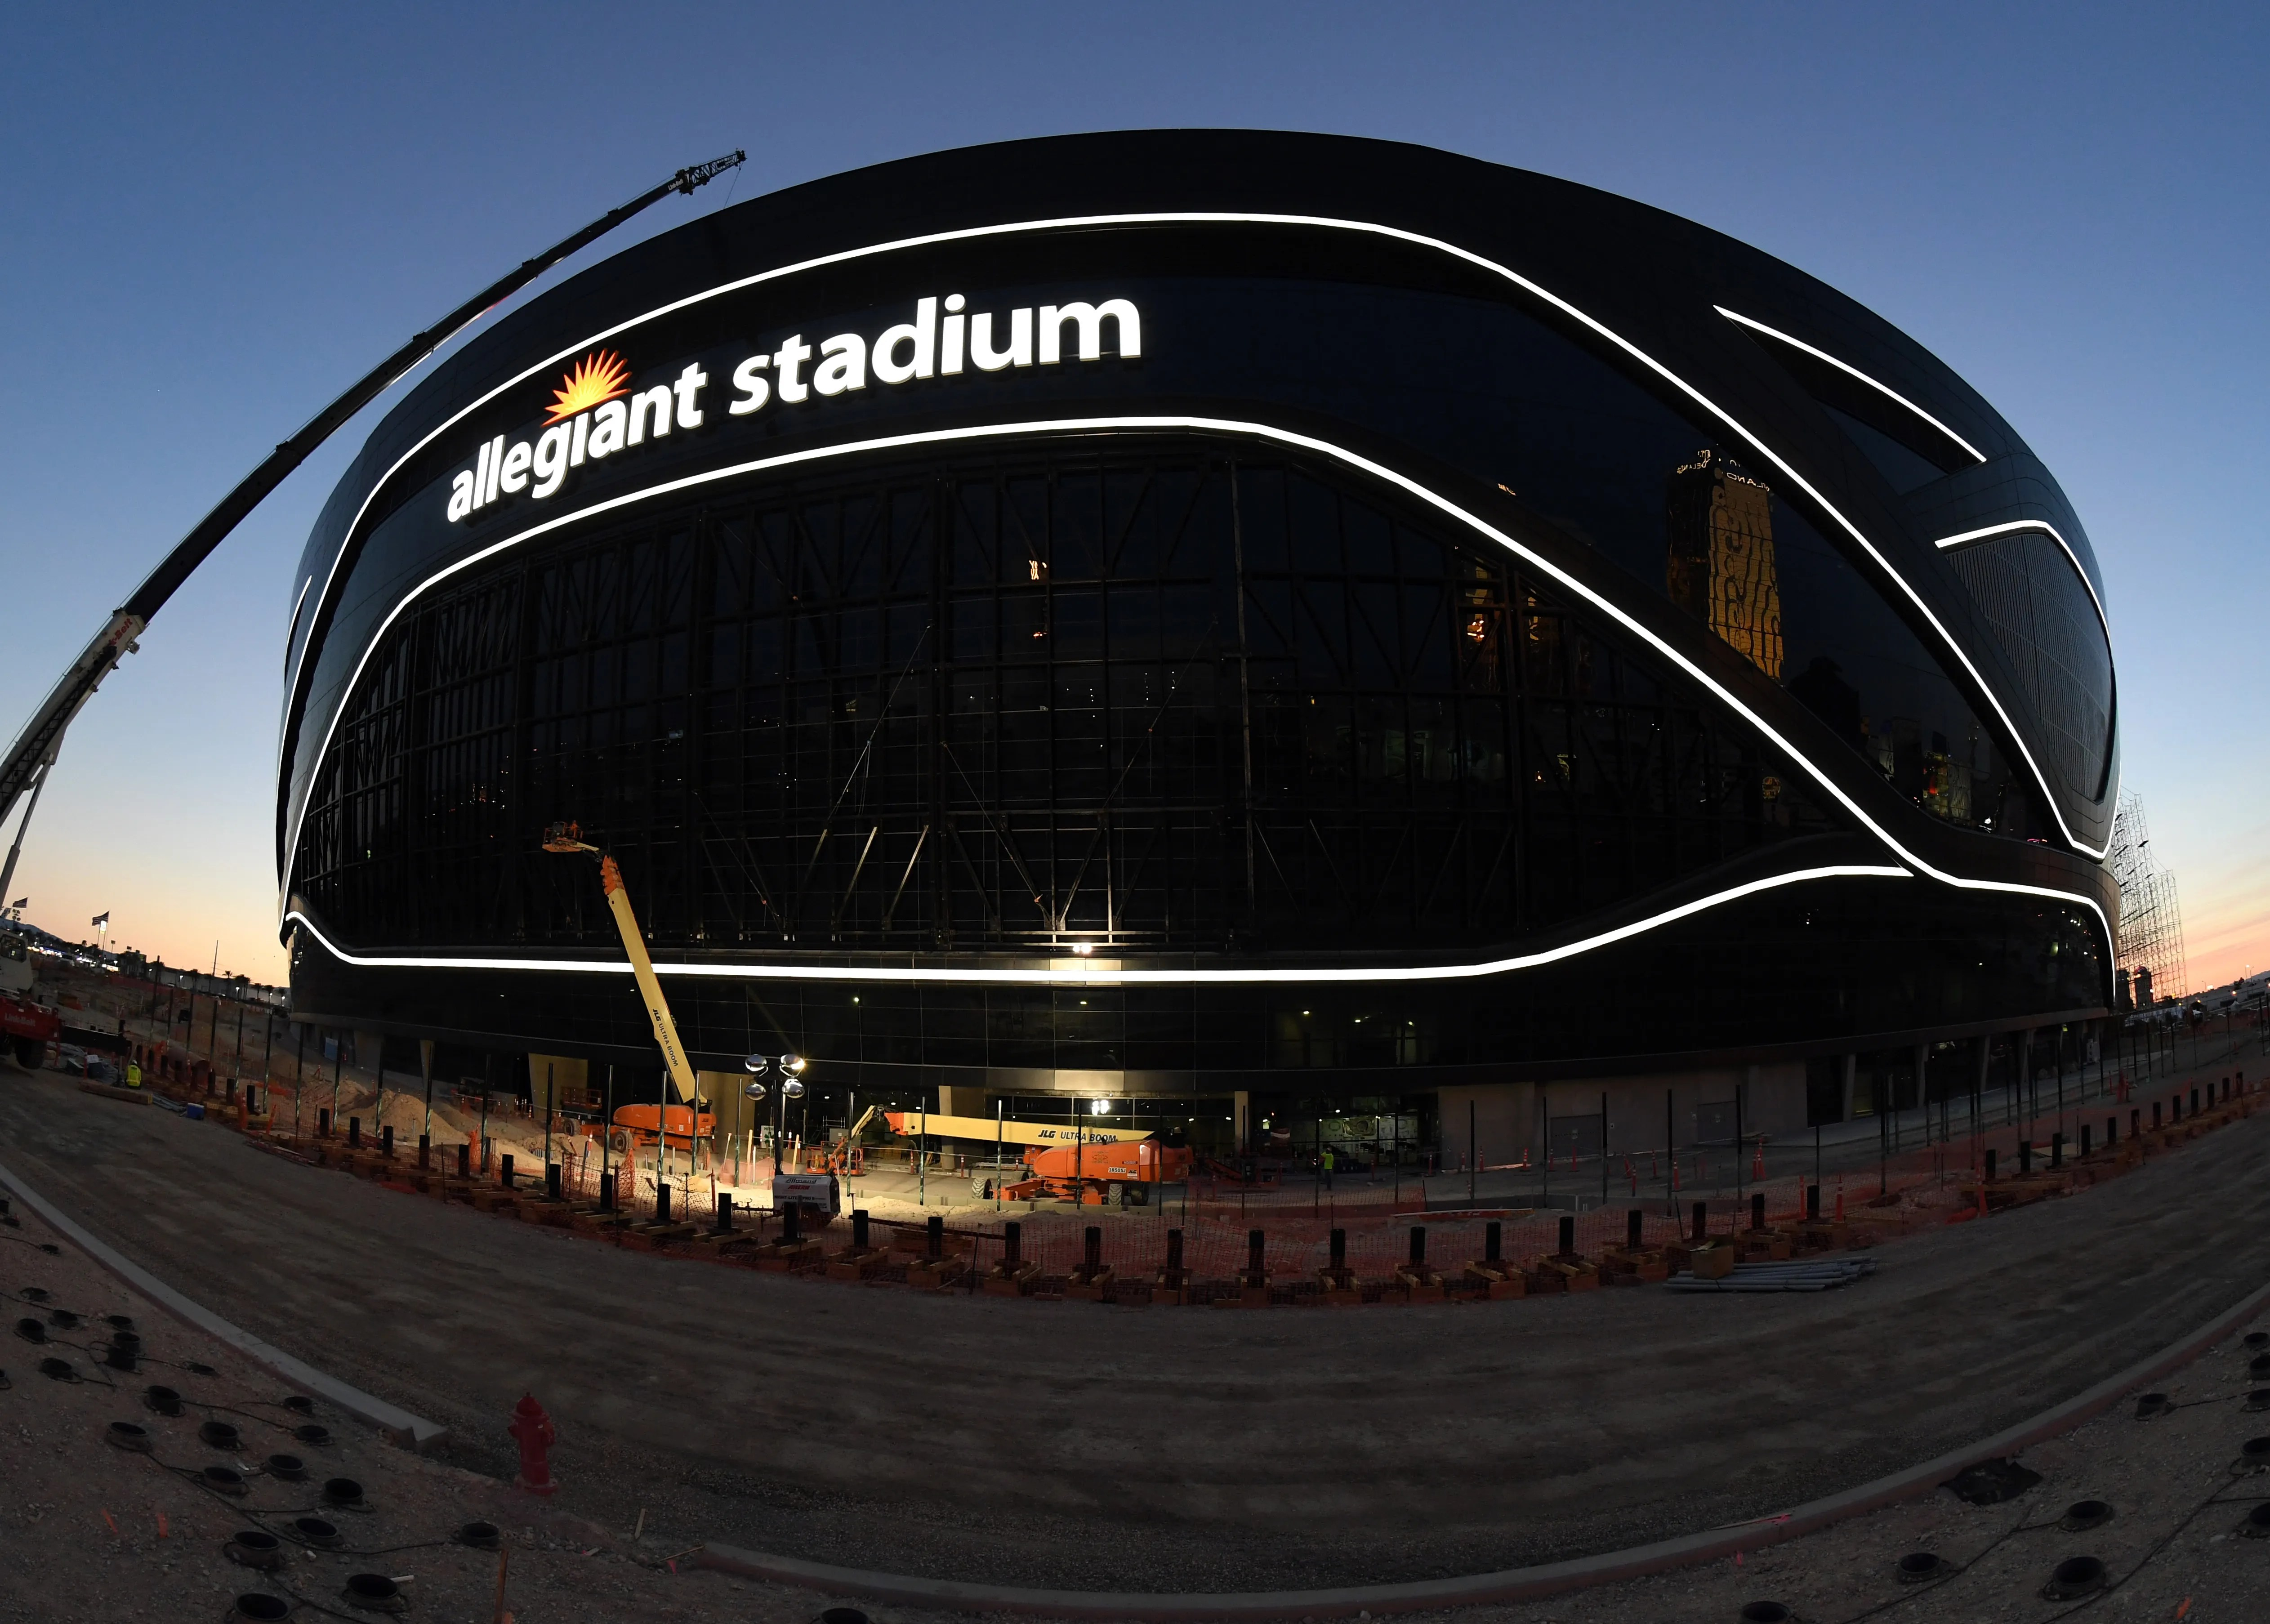 Oct 09, 2021· week 5 of the nfl season will get an early start when the new york jets and atlanta falcons face off in london. Las Vegas Raiders 2020 schedule: Dates, times, TV info for ...